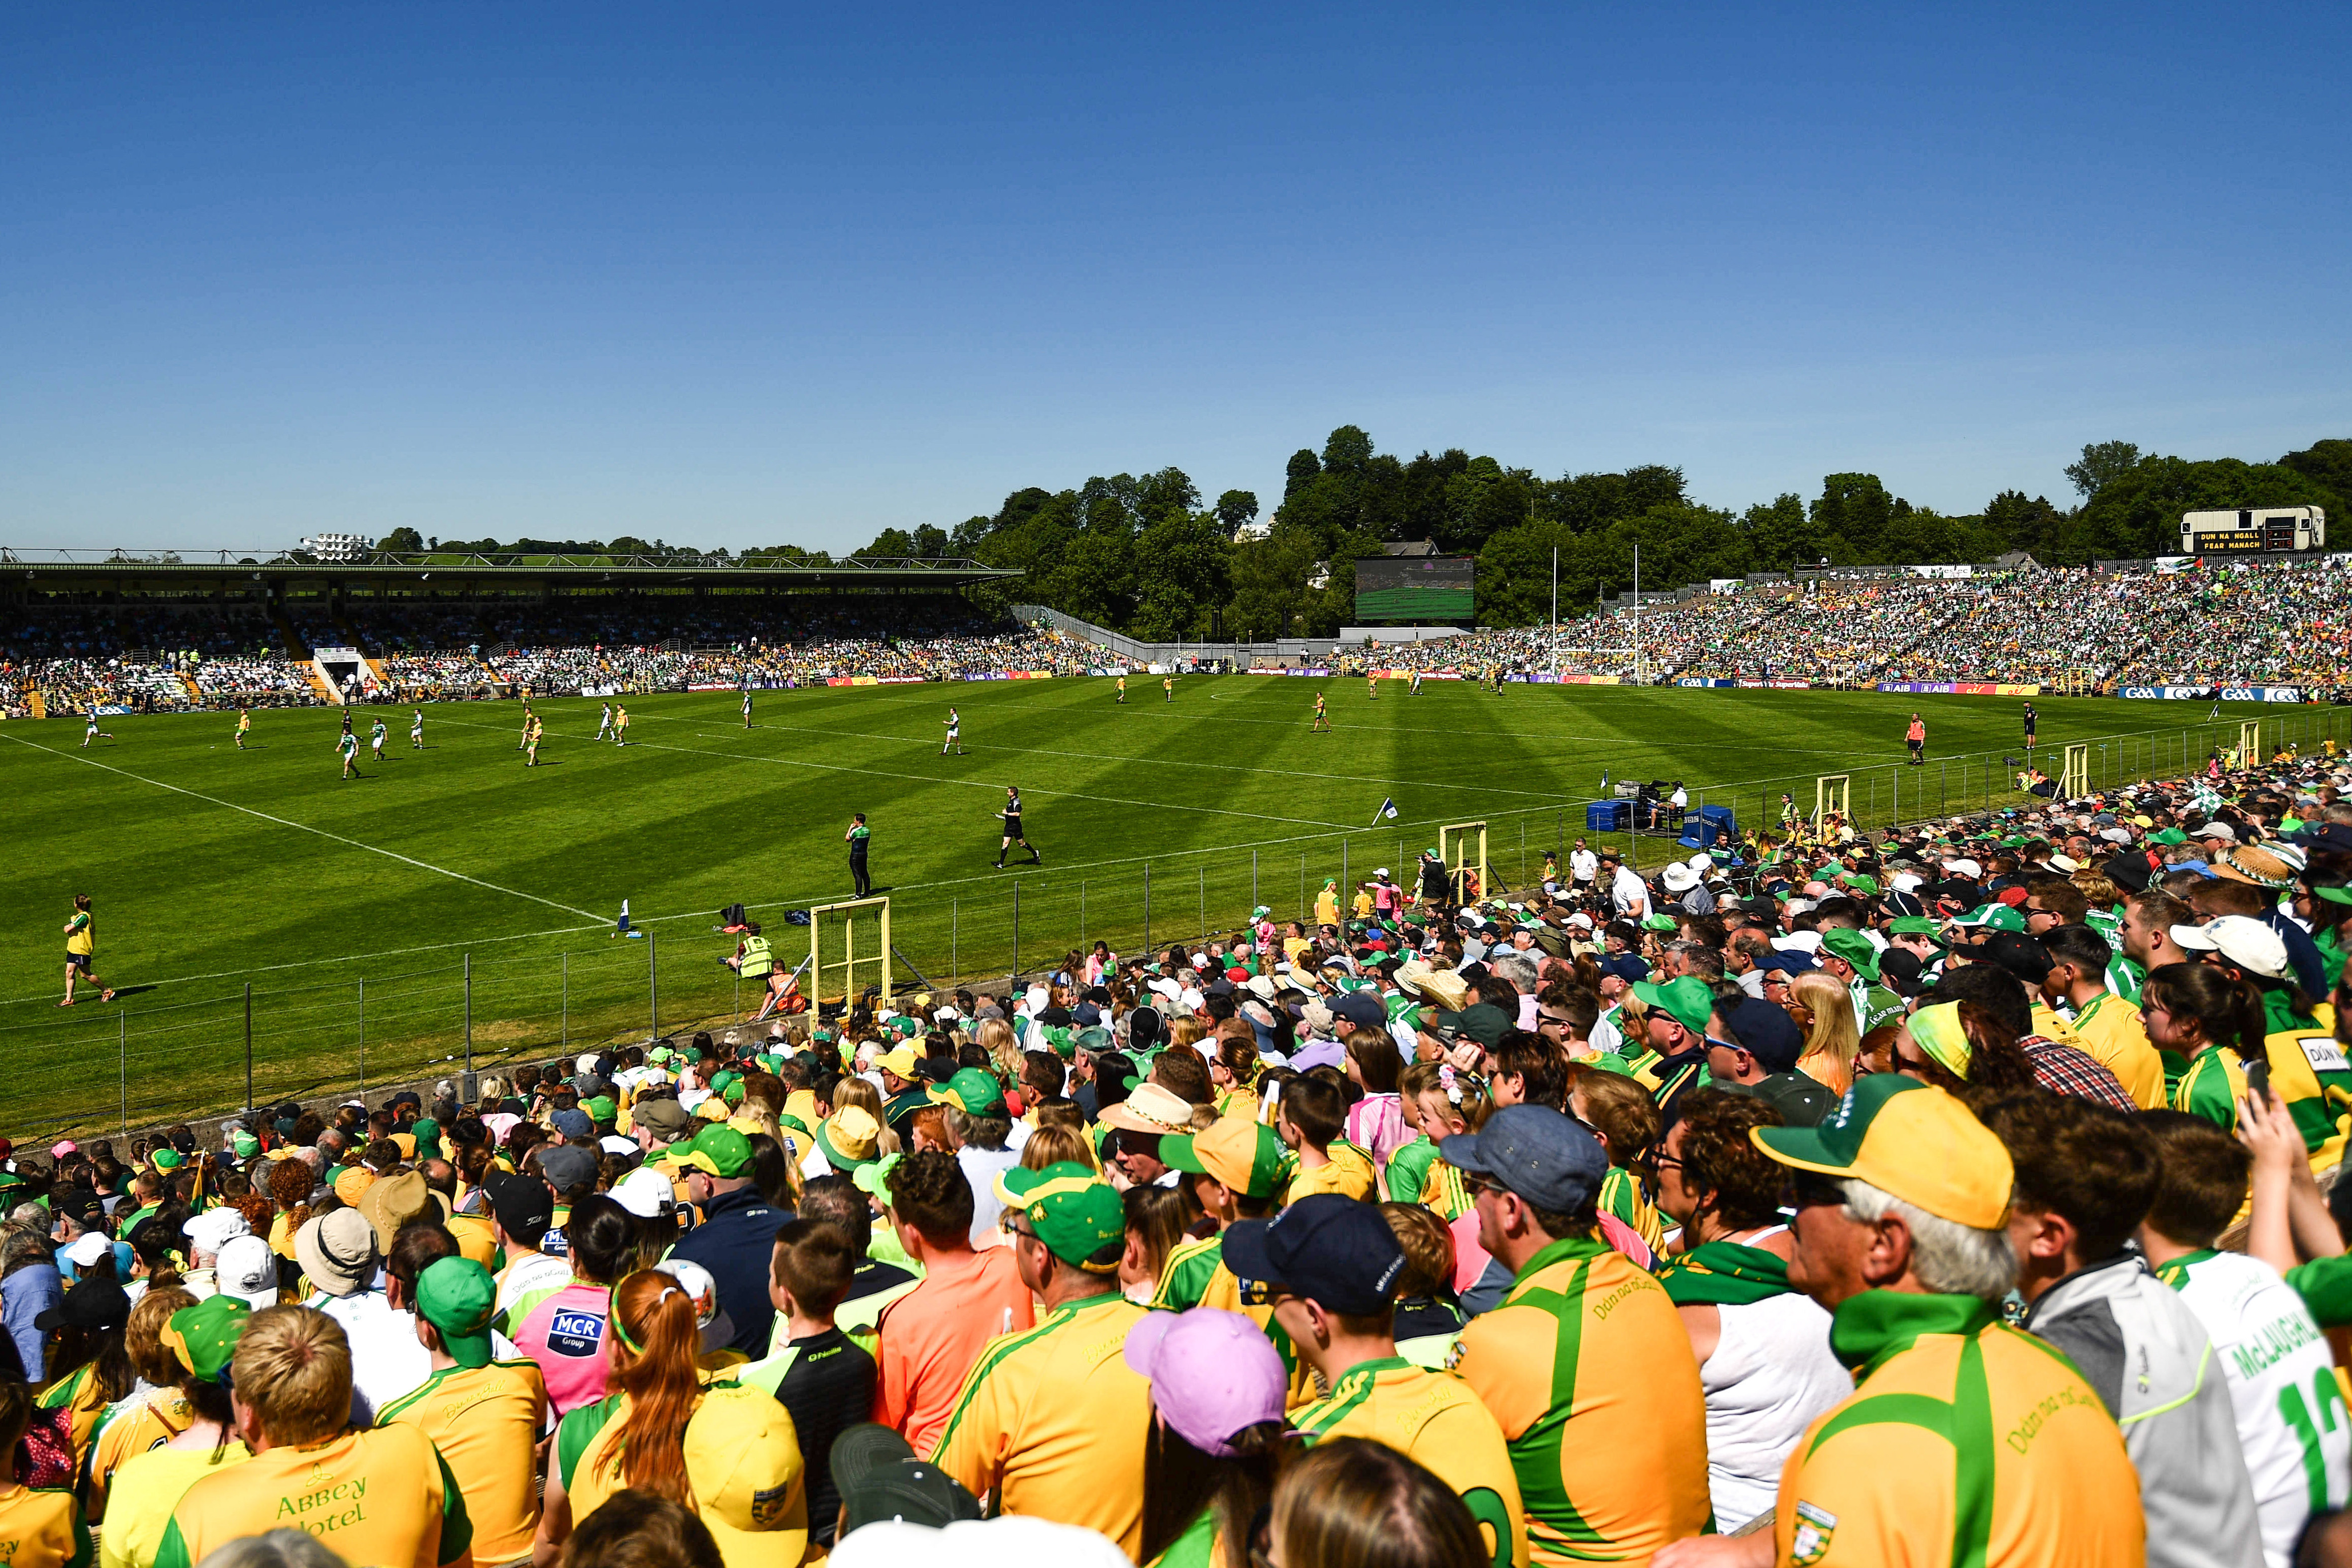 Ulster Championship Ticket Price Reductions and Packages announced